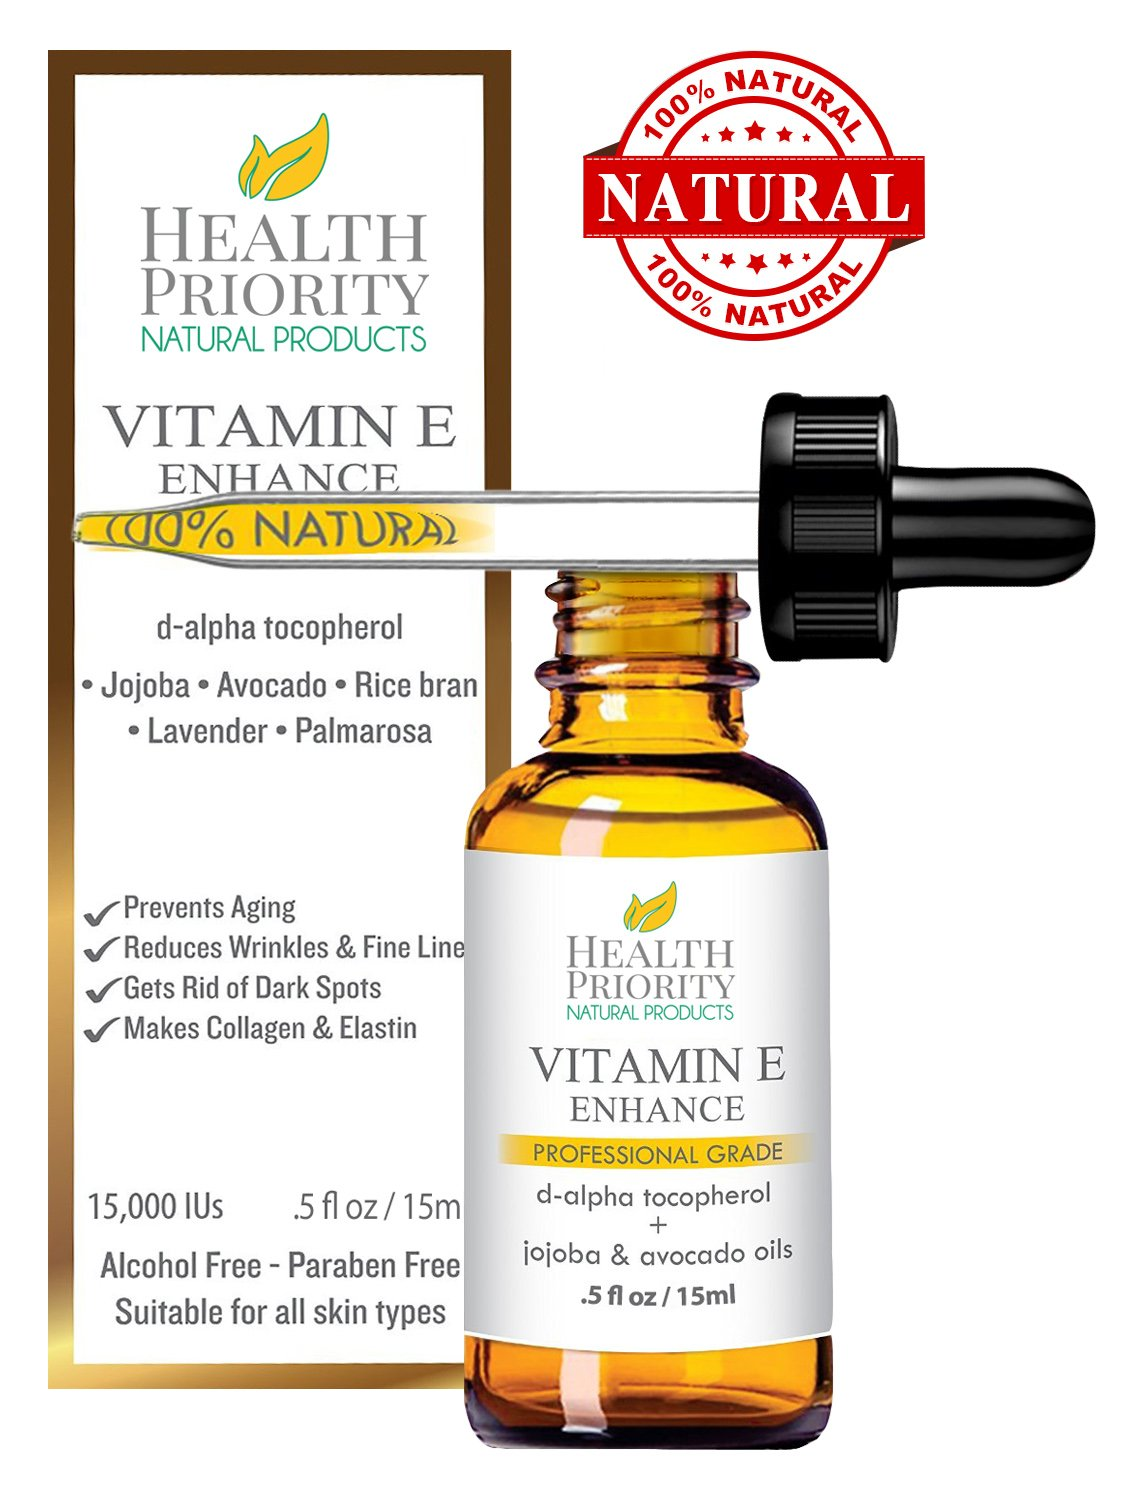 100% All Natural & Organic Vitamin E Oil For Your Face & Skin - 15,000/30,000 IU - Reduces Wrinkles, Lightens Dark Spots, Heals Stretch Marks & Surgical Scars. Best Treatment for Hair, Nails, Lips